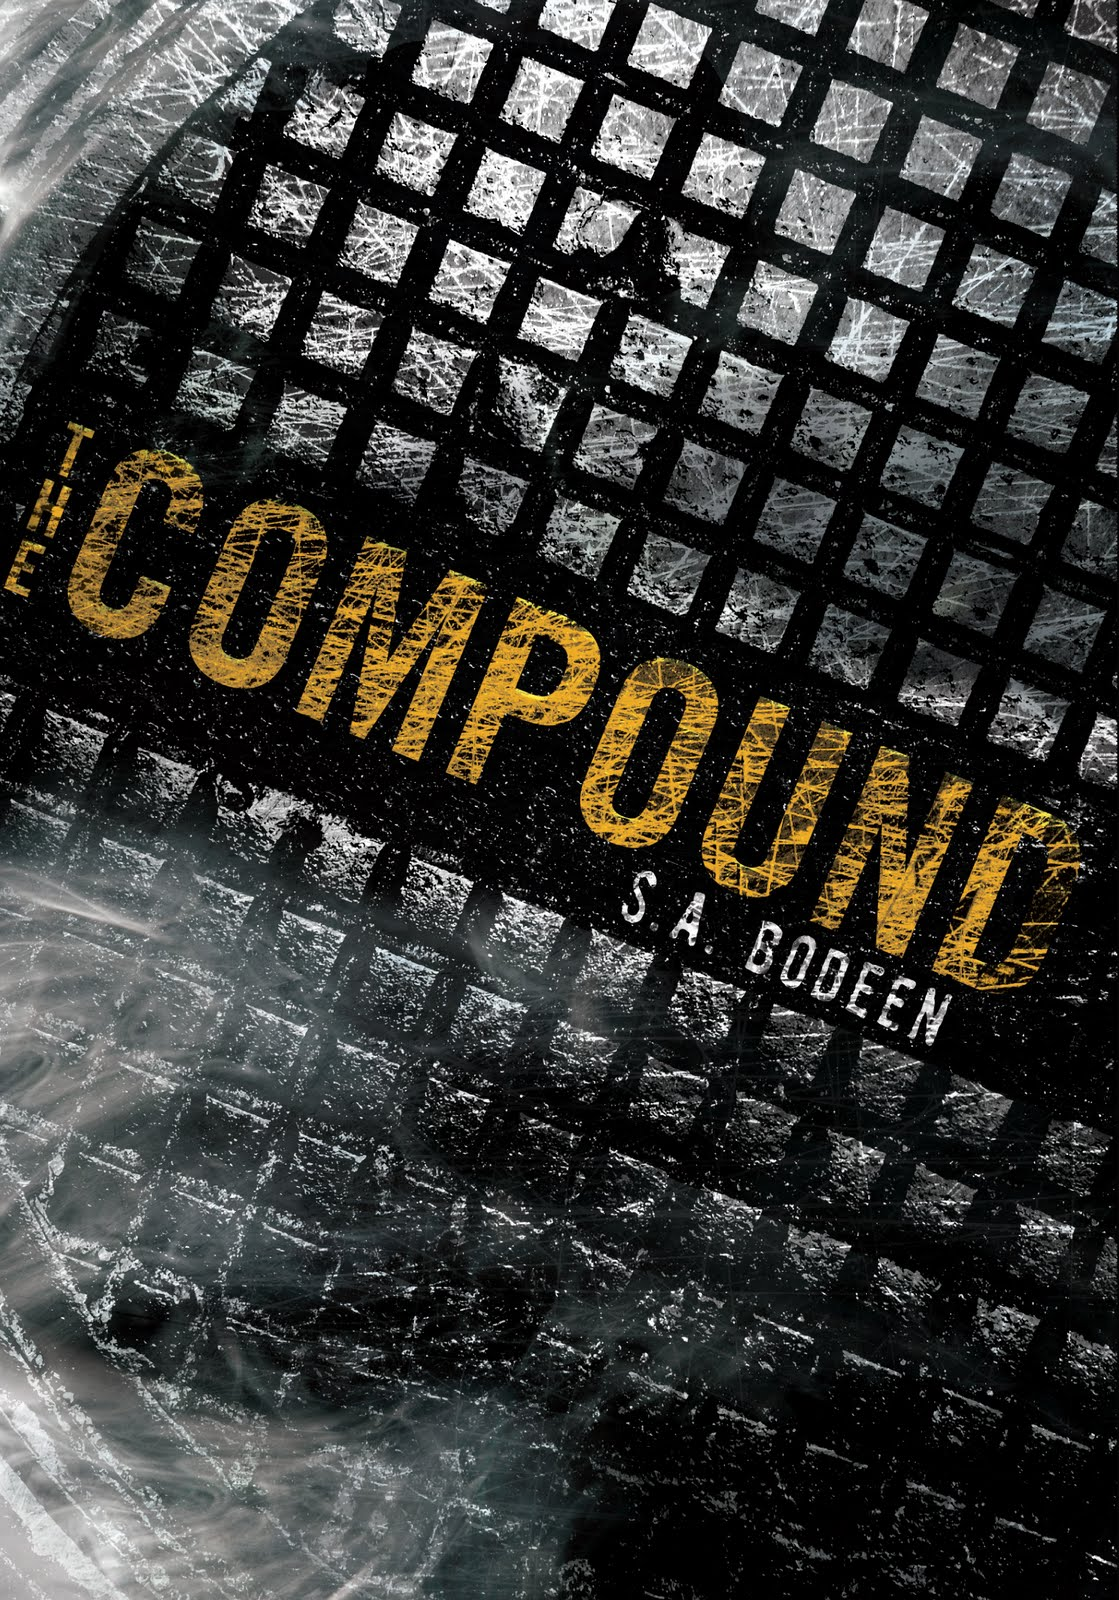 The compound sa bodeen